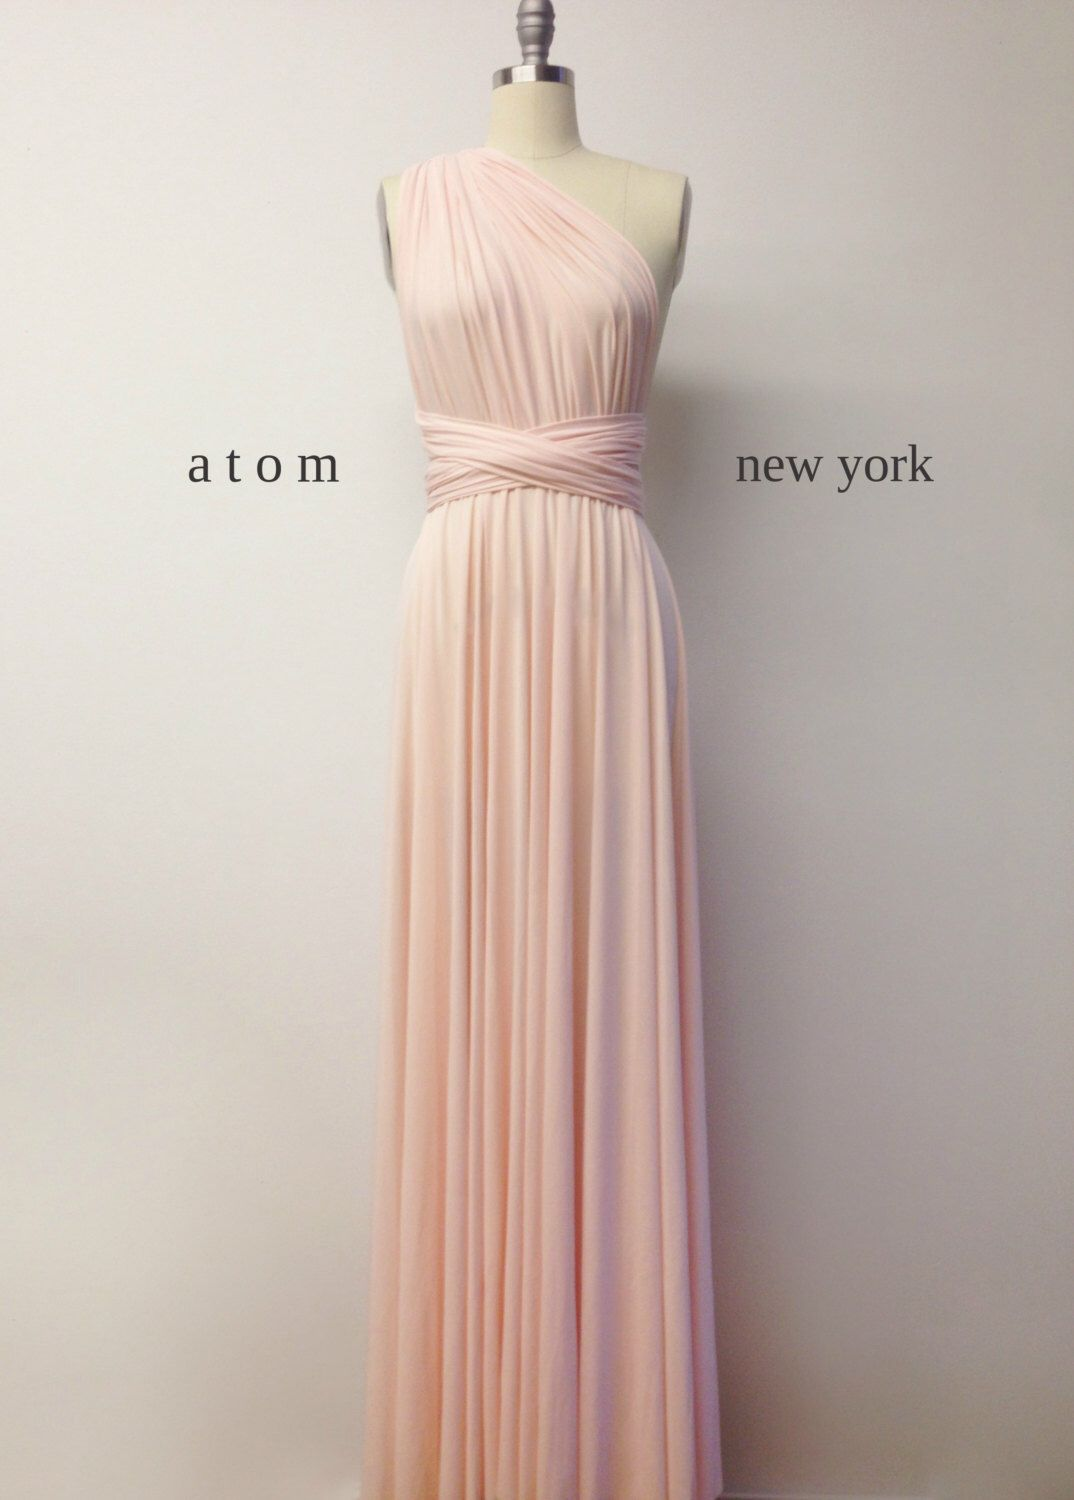 db8c980b147b $49 Blush Pink Floor Length Ball Gown Long Maxi Infinity Dress Convertible  Formal Multiway Wrap Dress